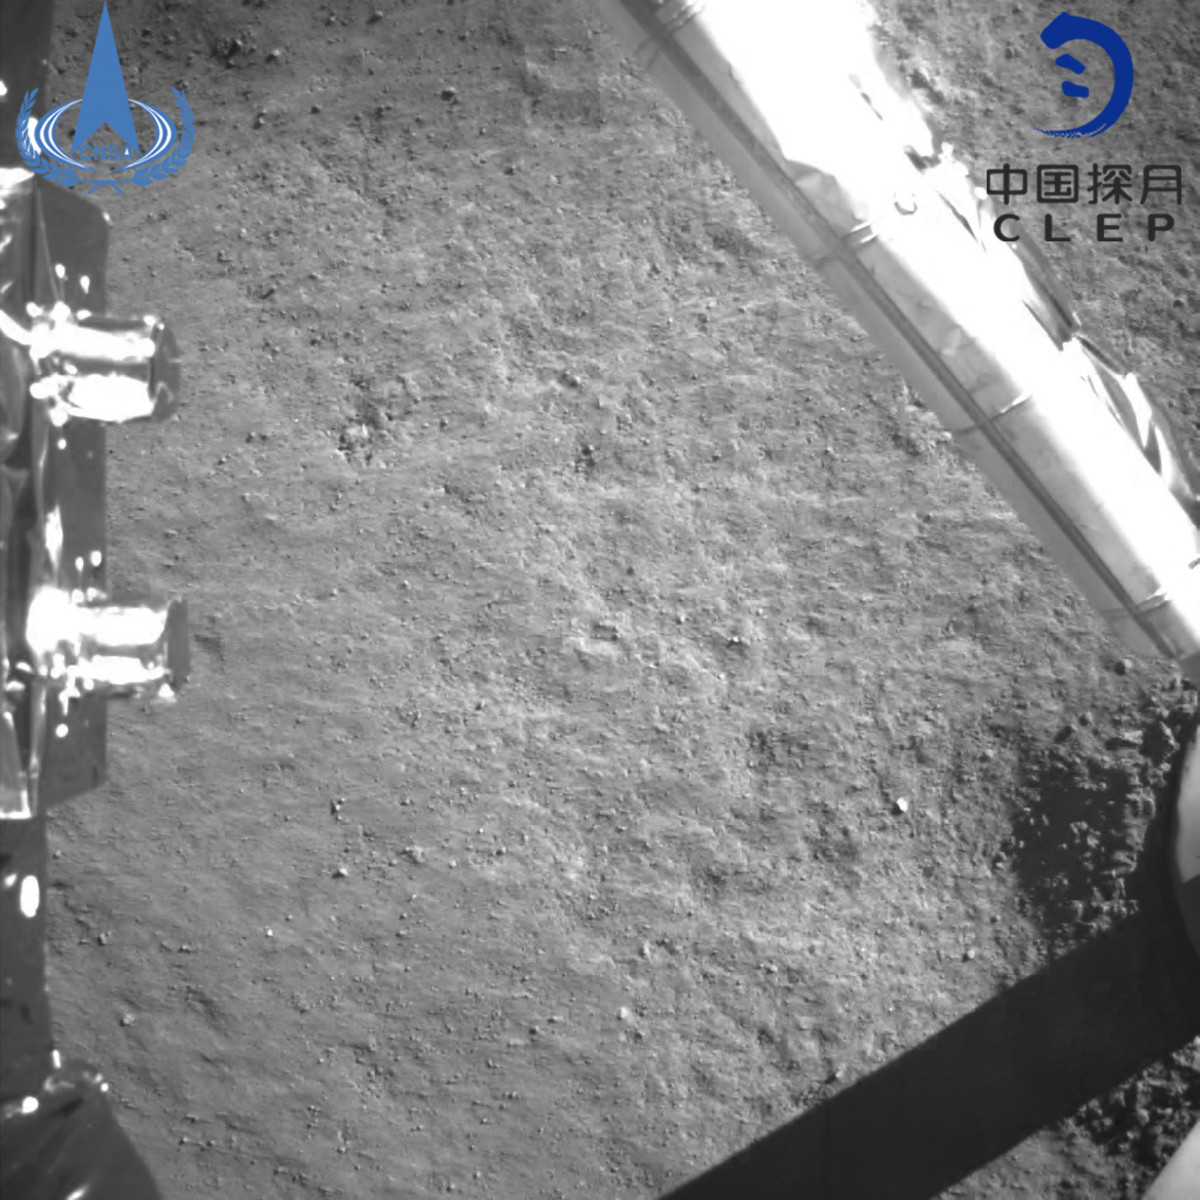 An image taken by China's Chang'e-4 probe after its landing on the far side of the moon on January 3, 2019, becoming the first spacecraft soft-landing on the moon's uncharted side never visible from Earth.